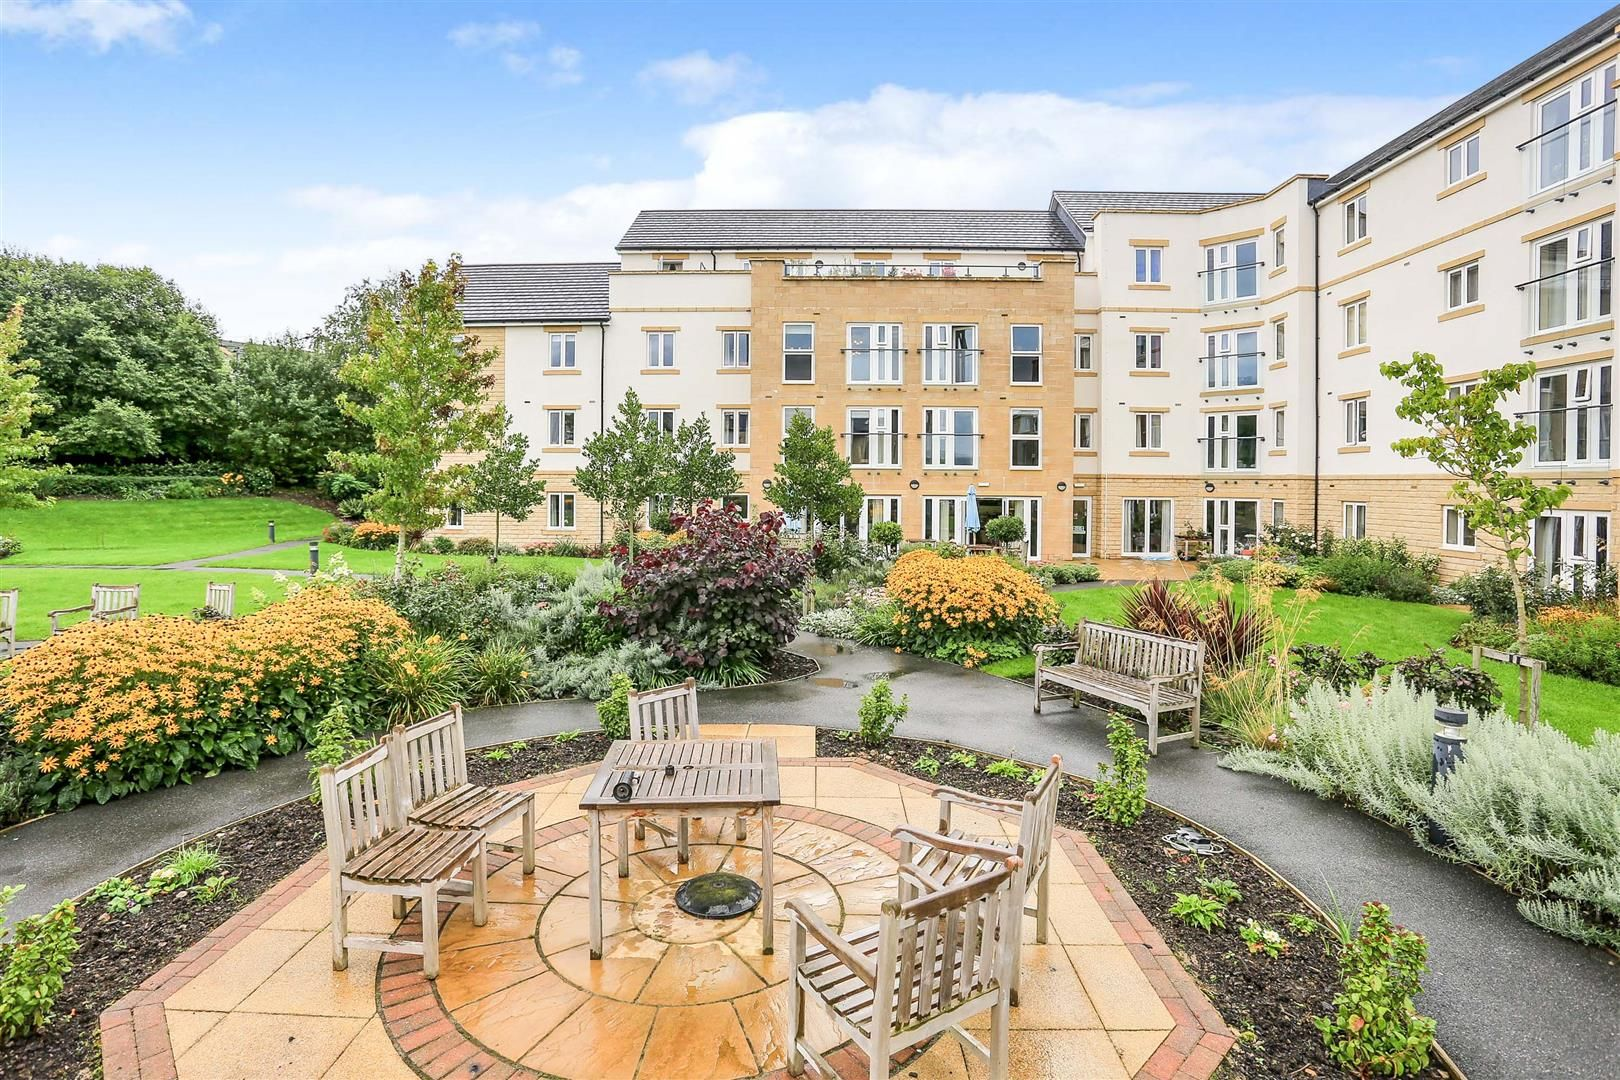 Property photo 1 of 16. Chesterton Court